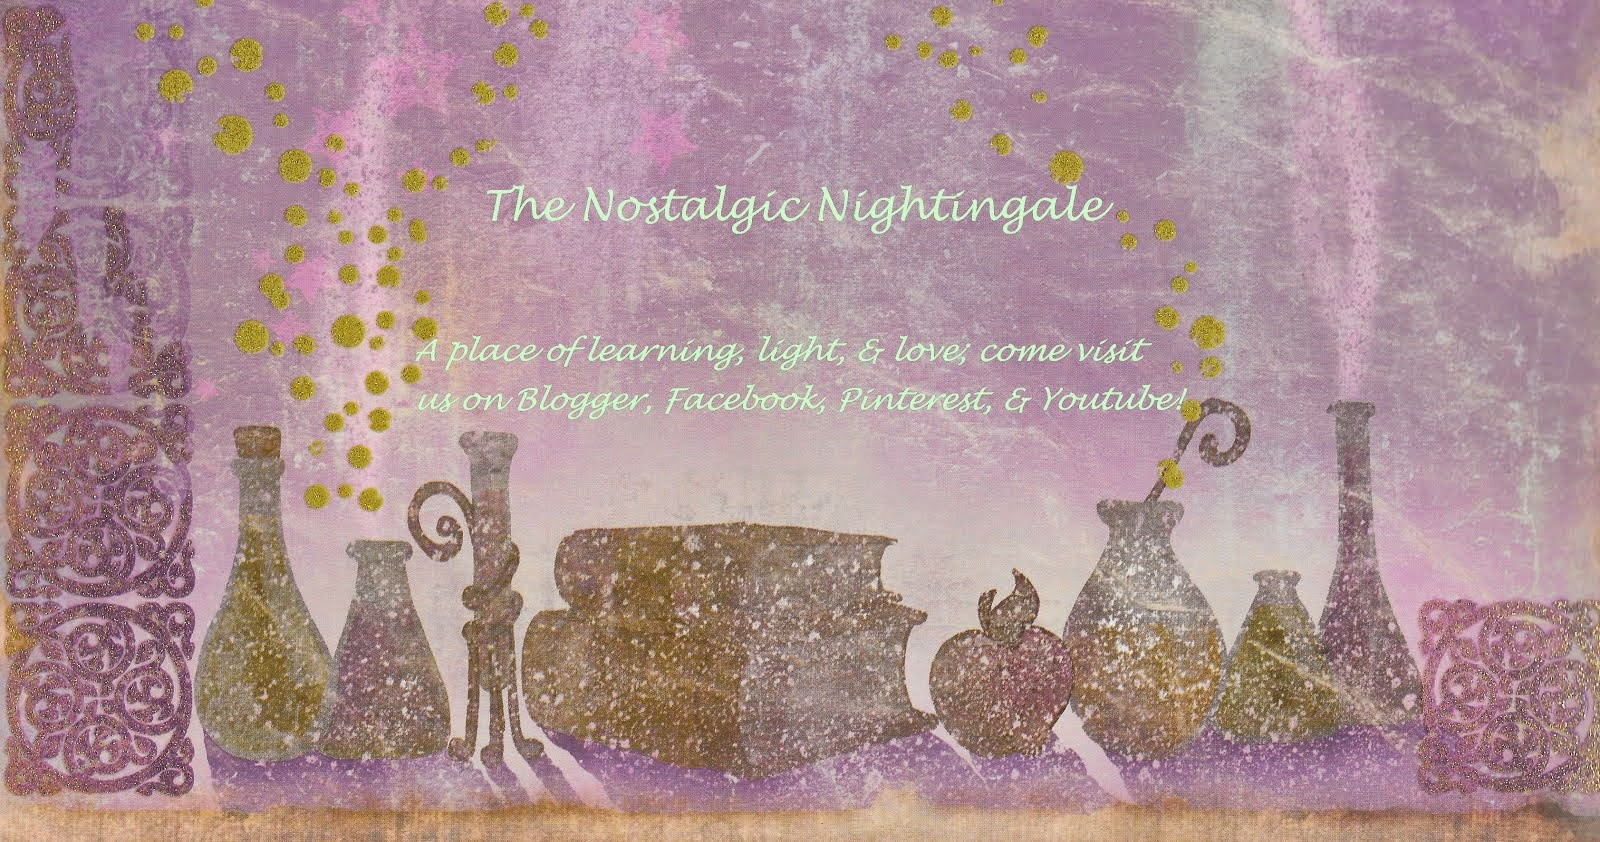 The Nostalgic Nightingale